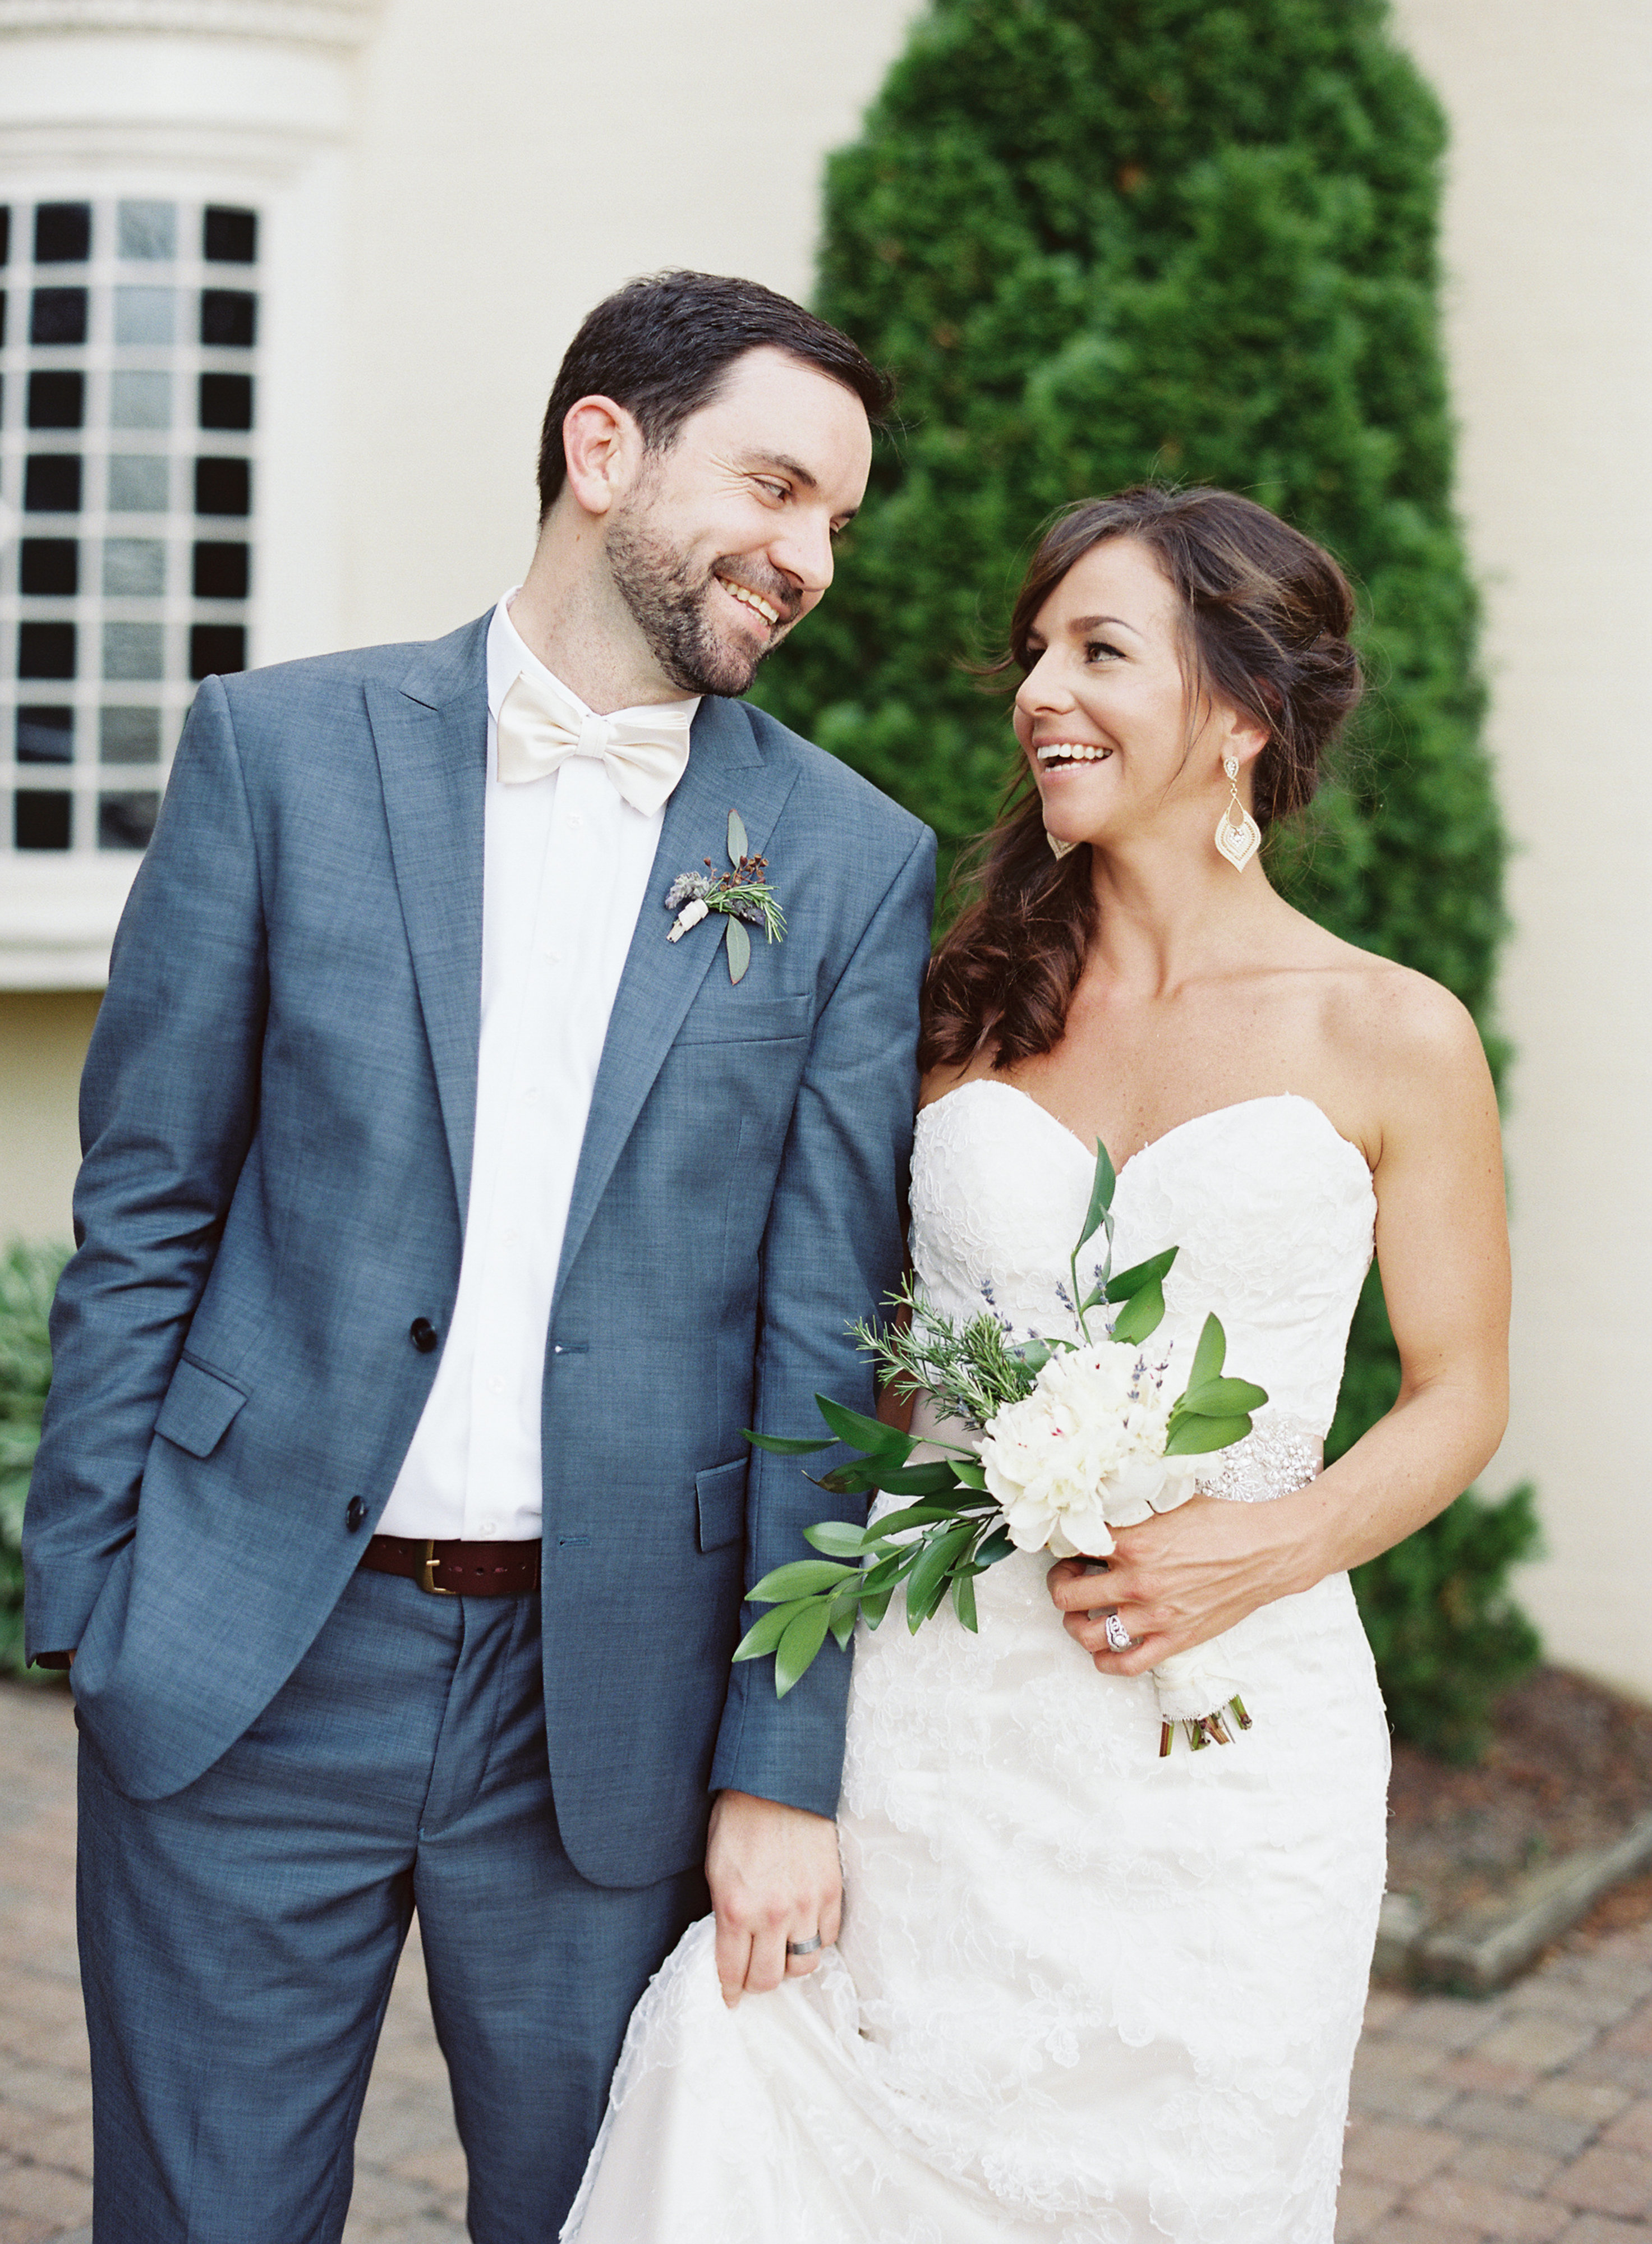 Rustic Glam Summer Wedding at Evergreen Museum + Library